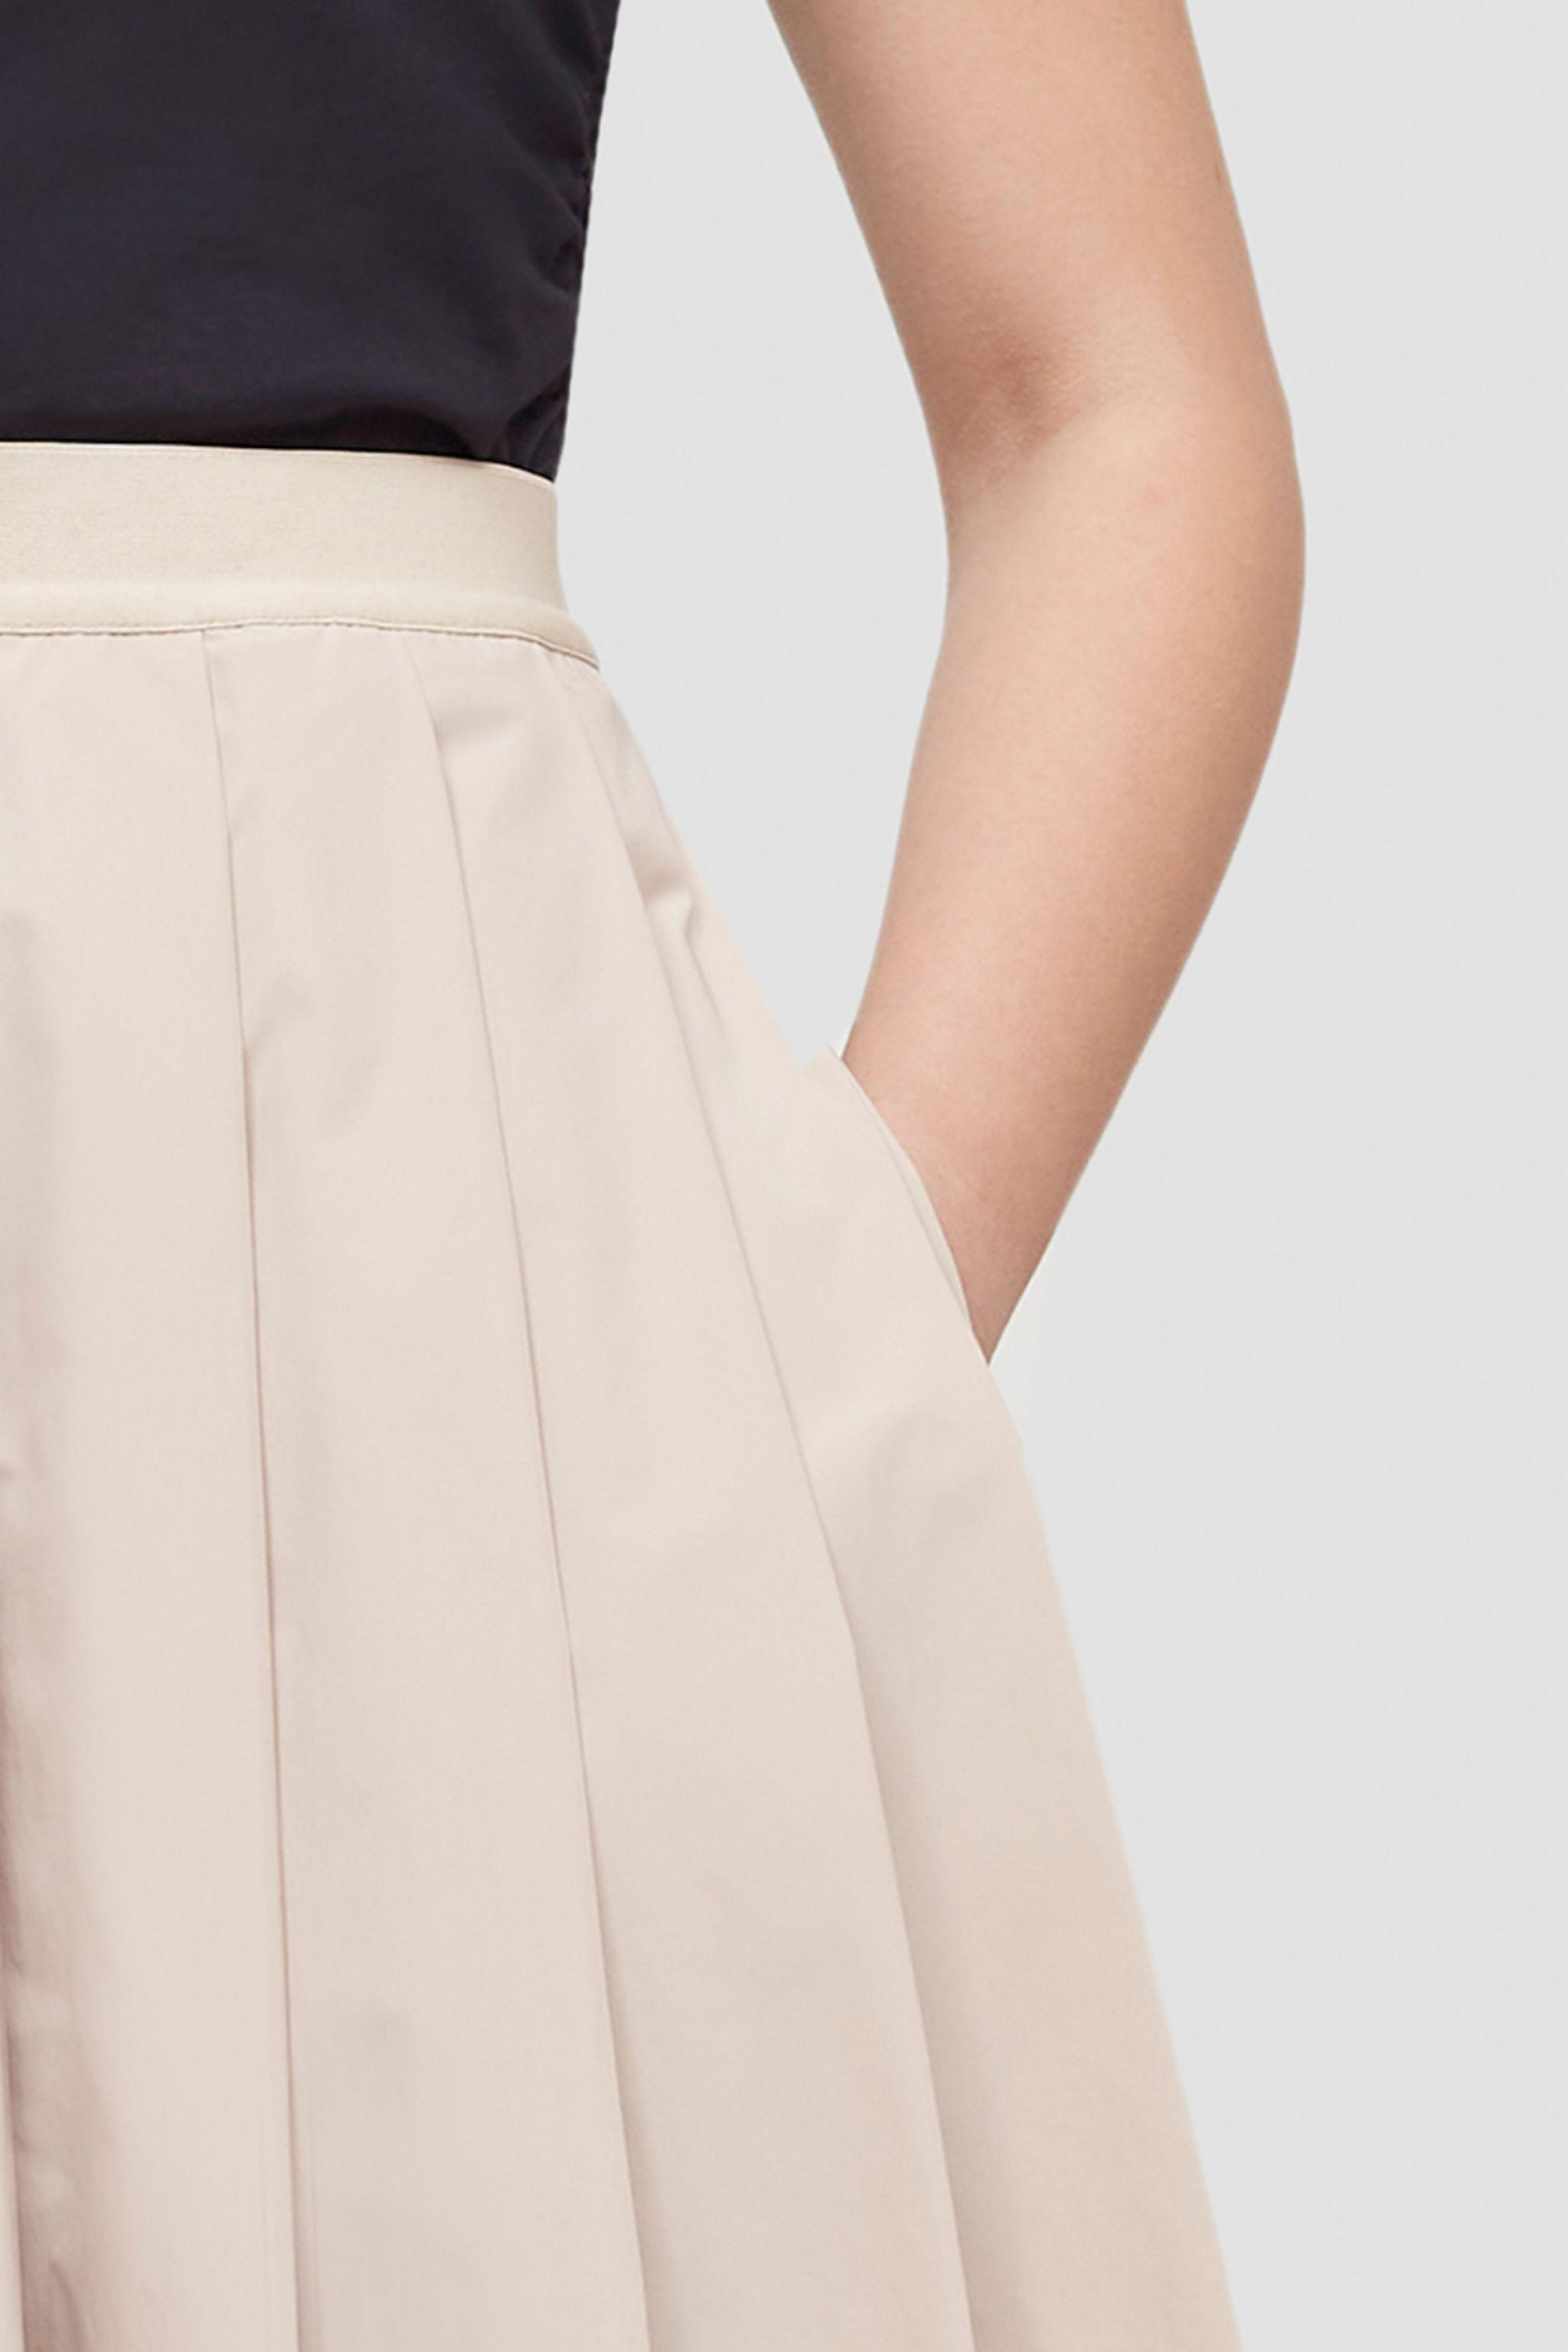 The Day Pleated Skirt 4